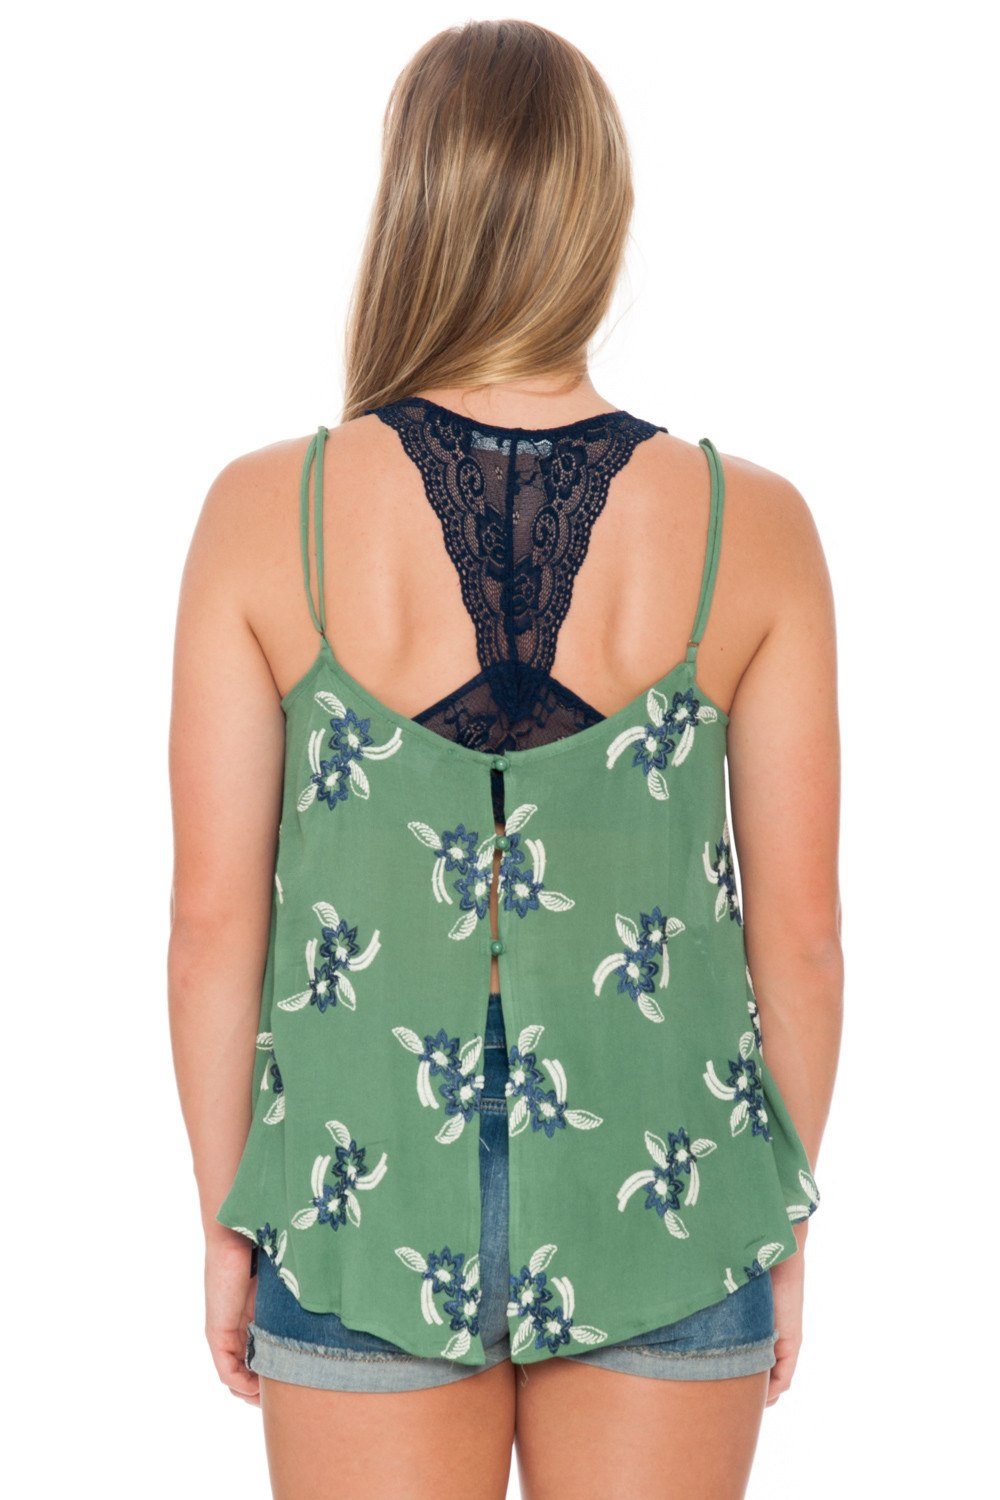 Top - Shear Green with Open Back - 3